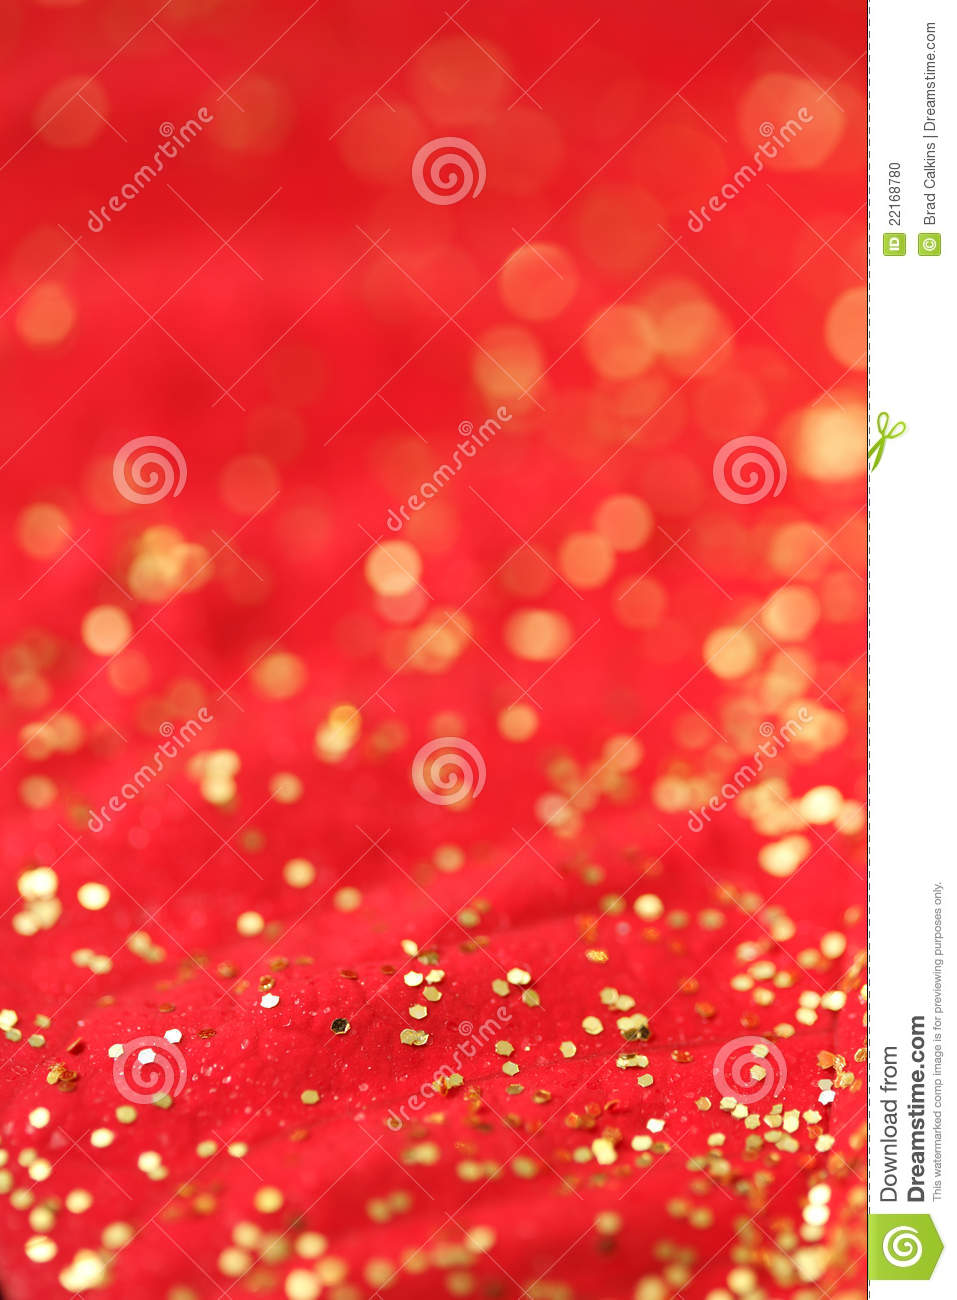 Red And Gold Background Stock Photo - Image: 22168780